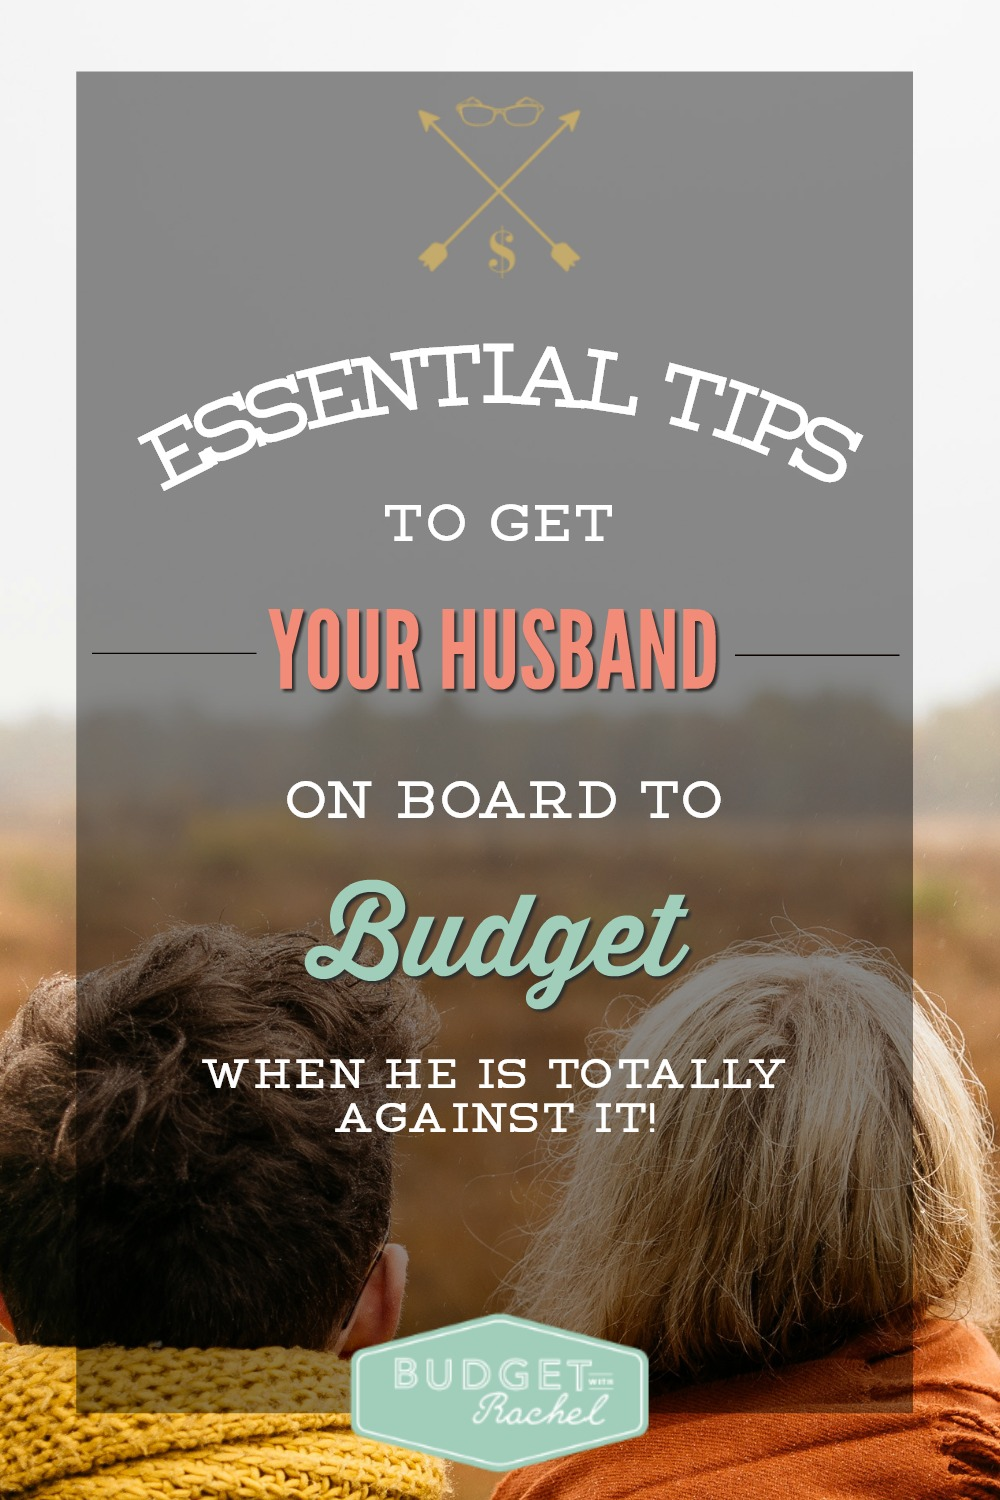 Essential Tips to Get Your Husband on Board to Budget. This totally worked! Such good advice! After going through the first few questions with my husband, I learned so much about him and now we are both on the same page about budgeting. I'm going to remember this advice in the future because I know we will have disagreements and this will help us get through them.